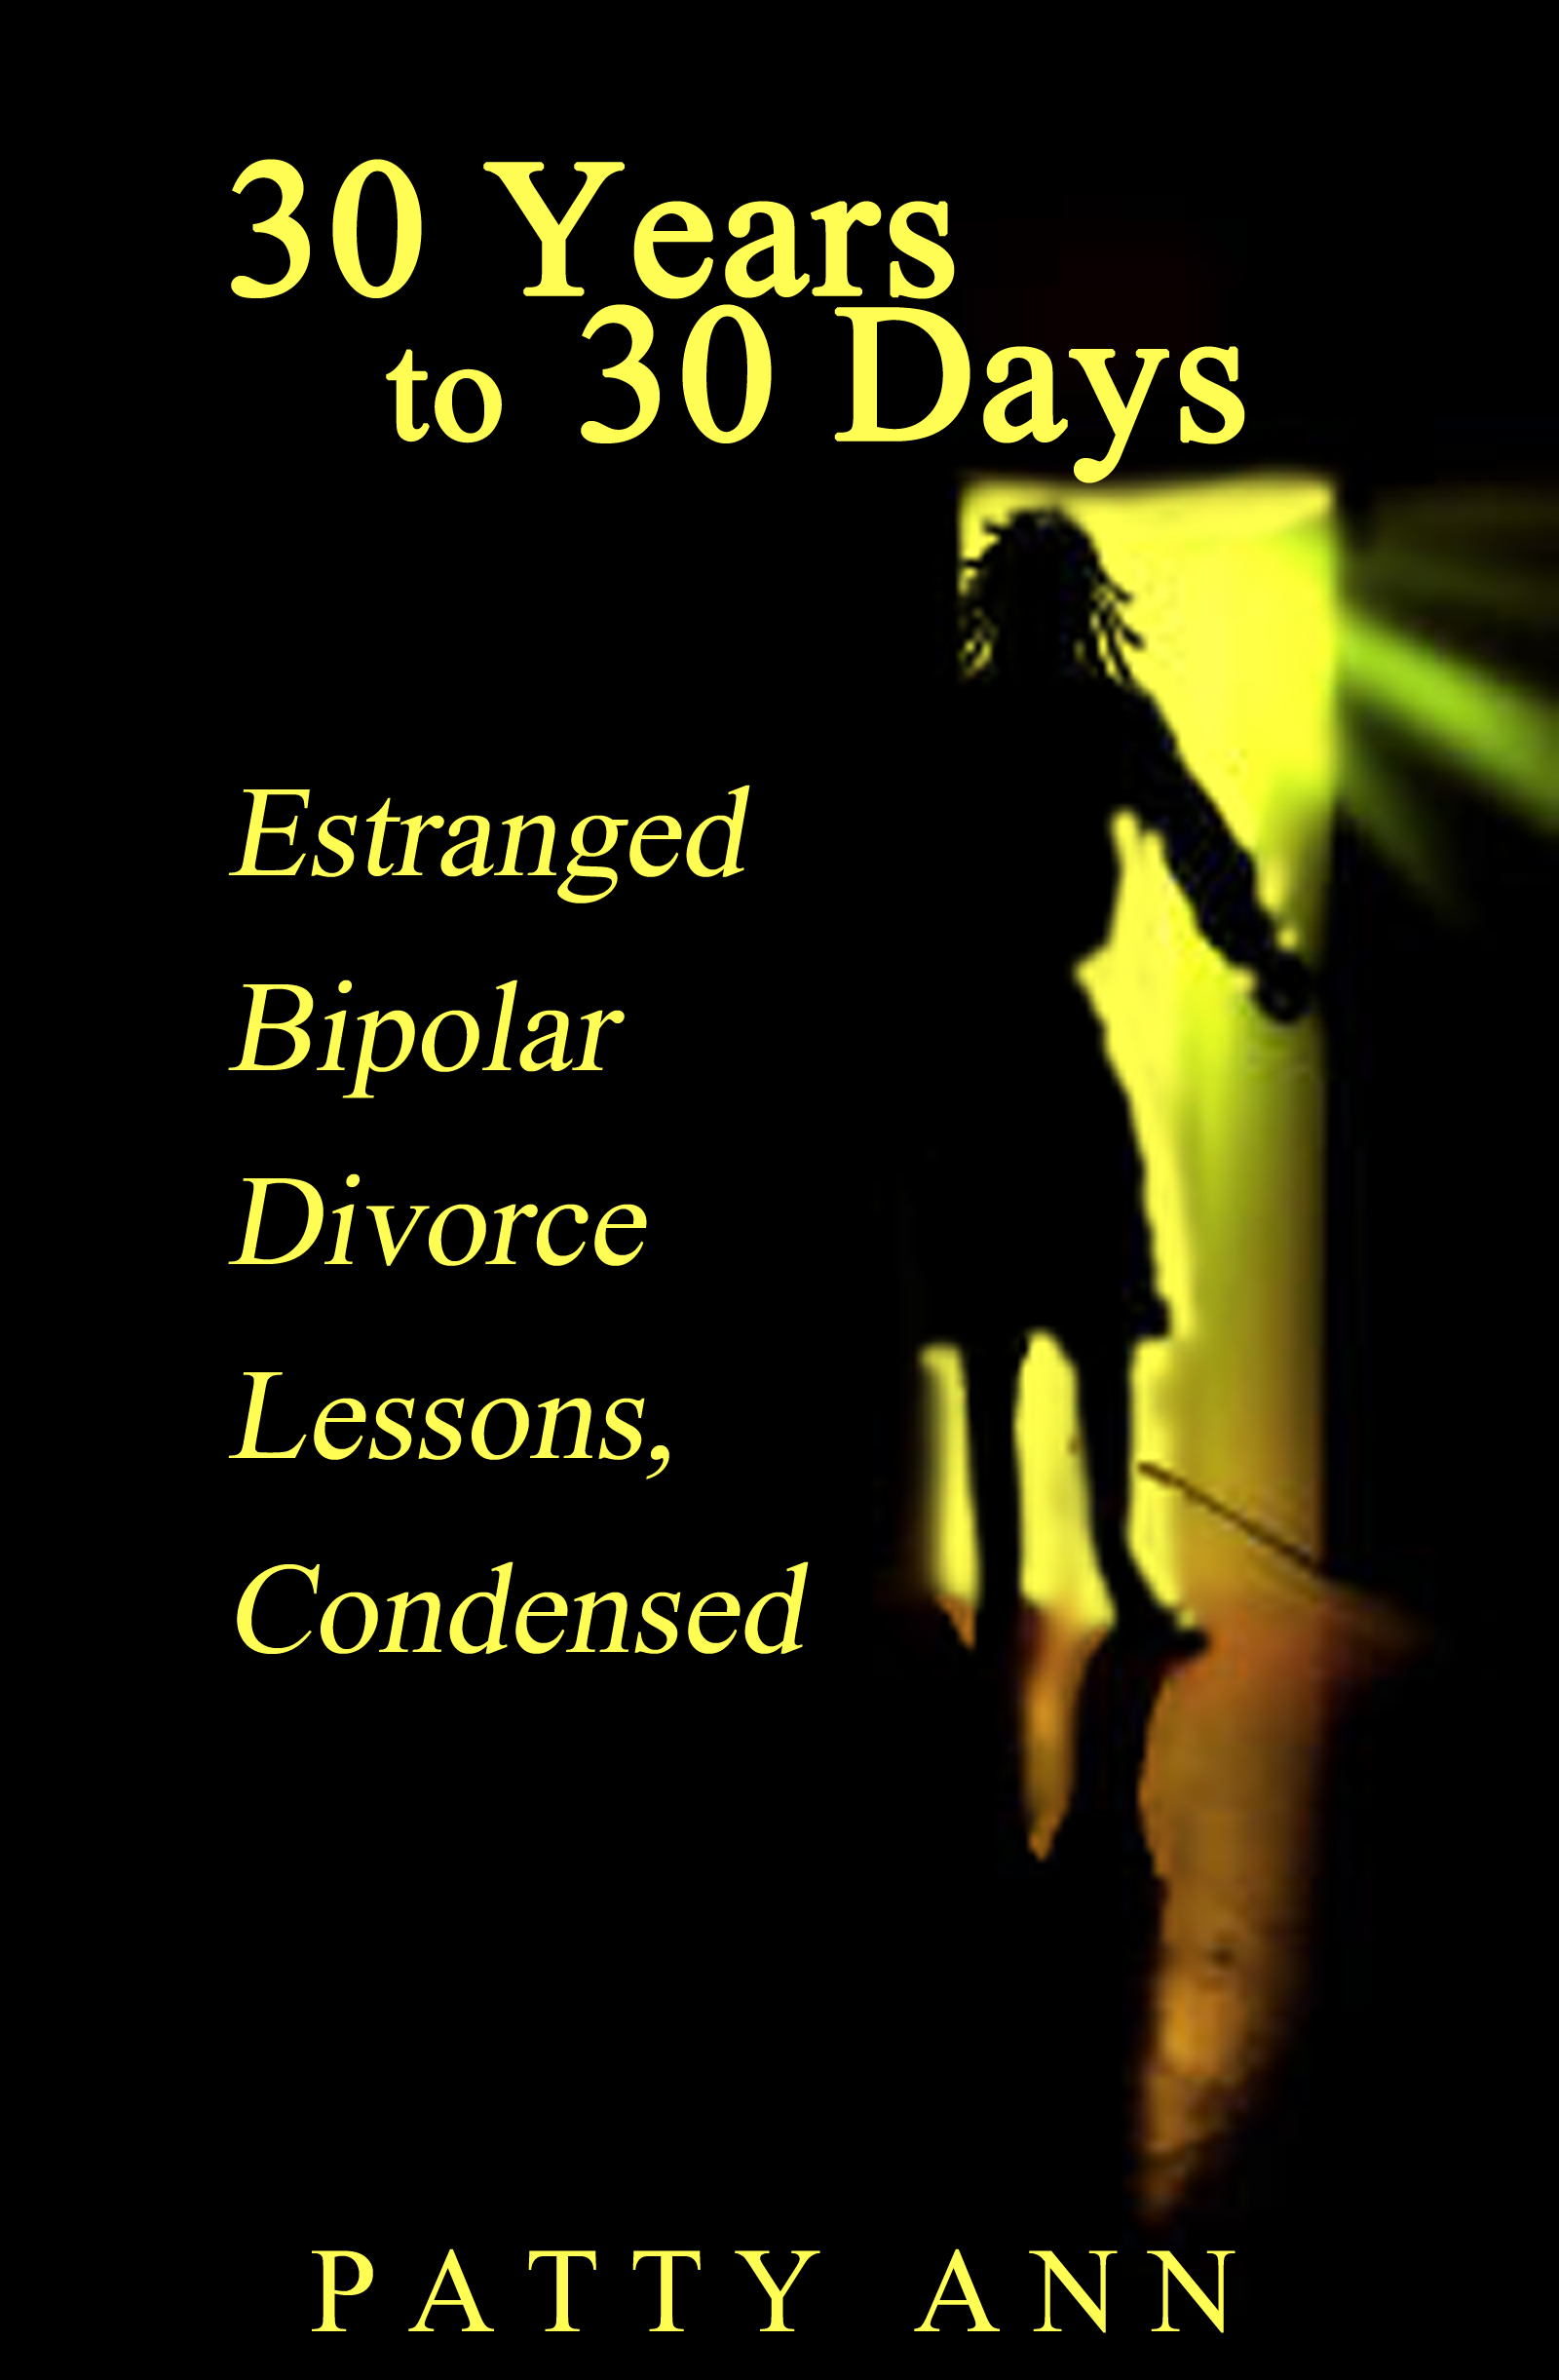 30 Years to 30 Days; Estranged Bipolar Divorce Lessons, Condensed